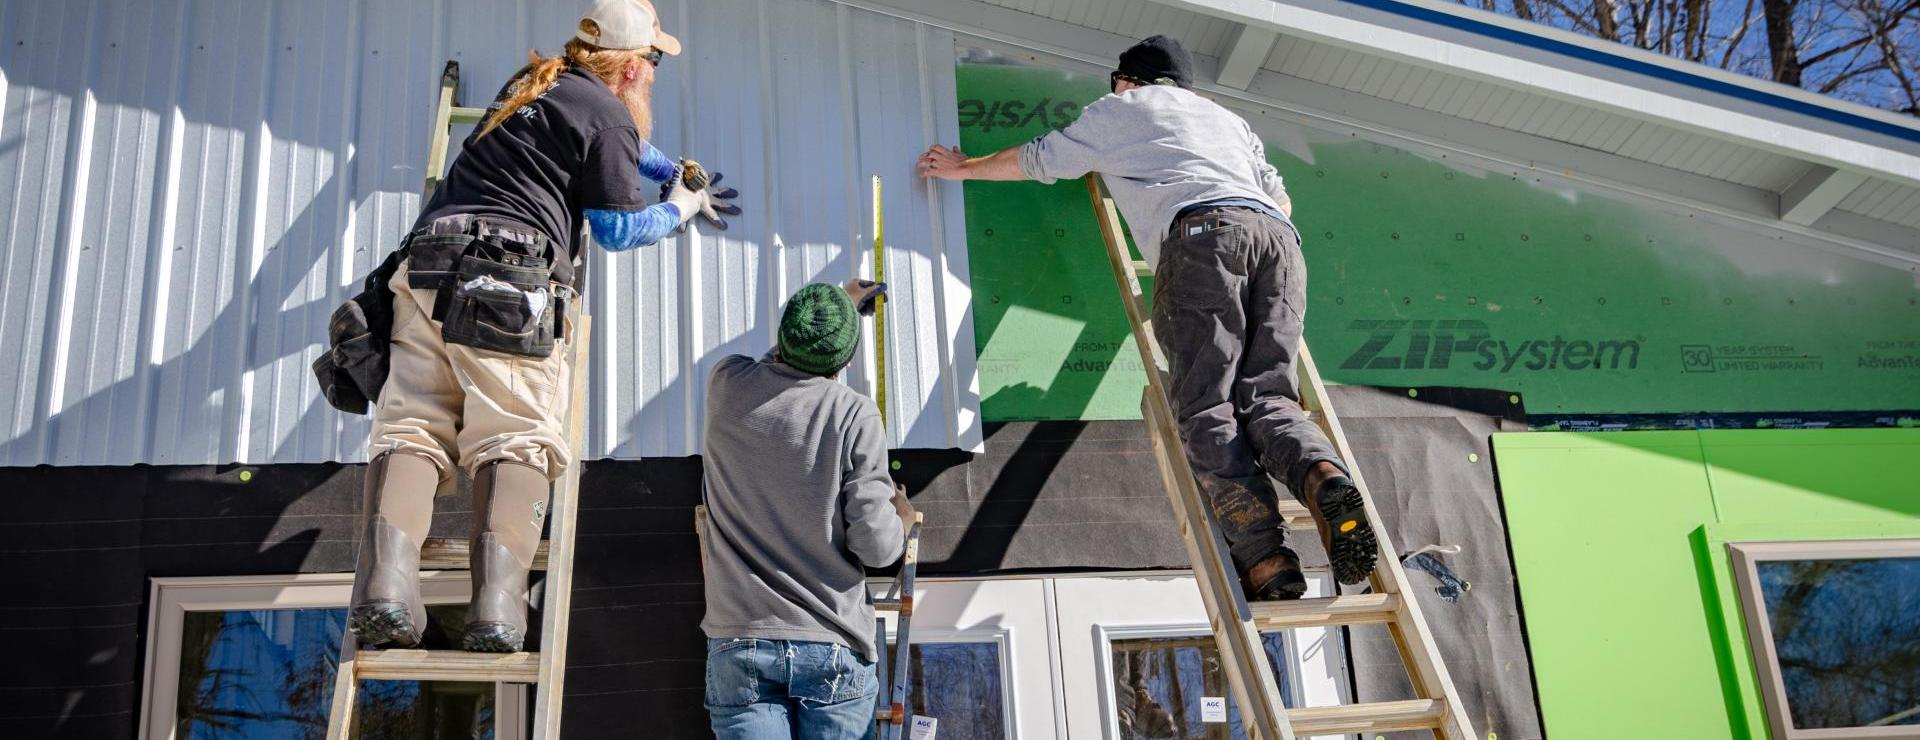 Three people on ladders applying siding to house